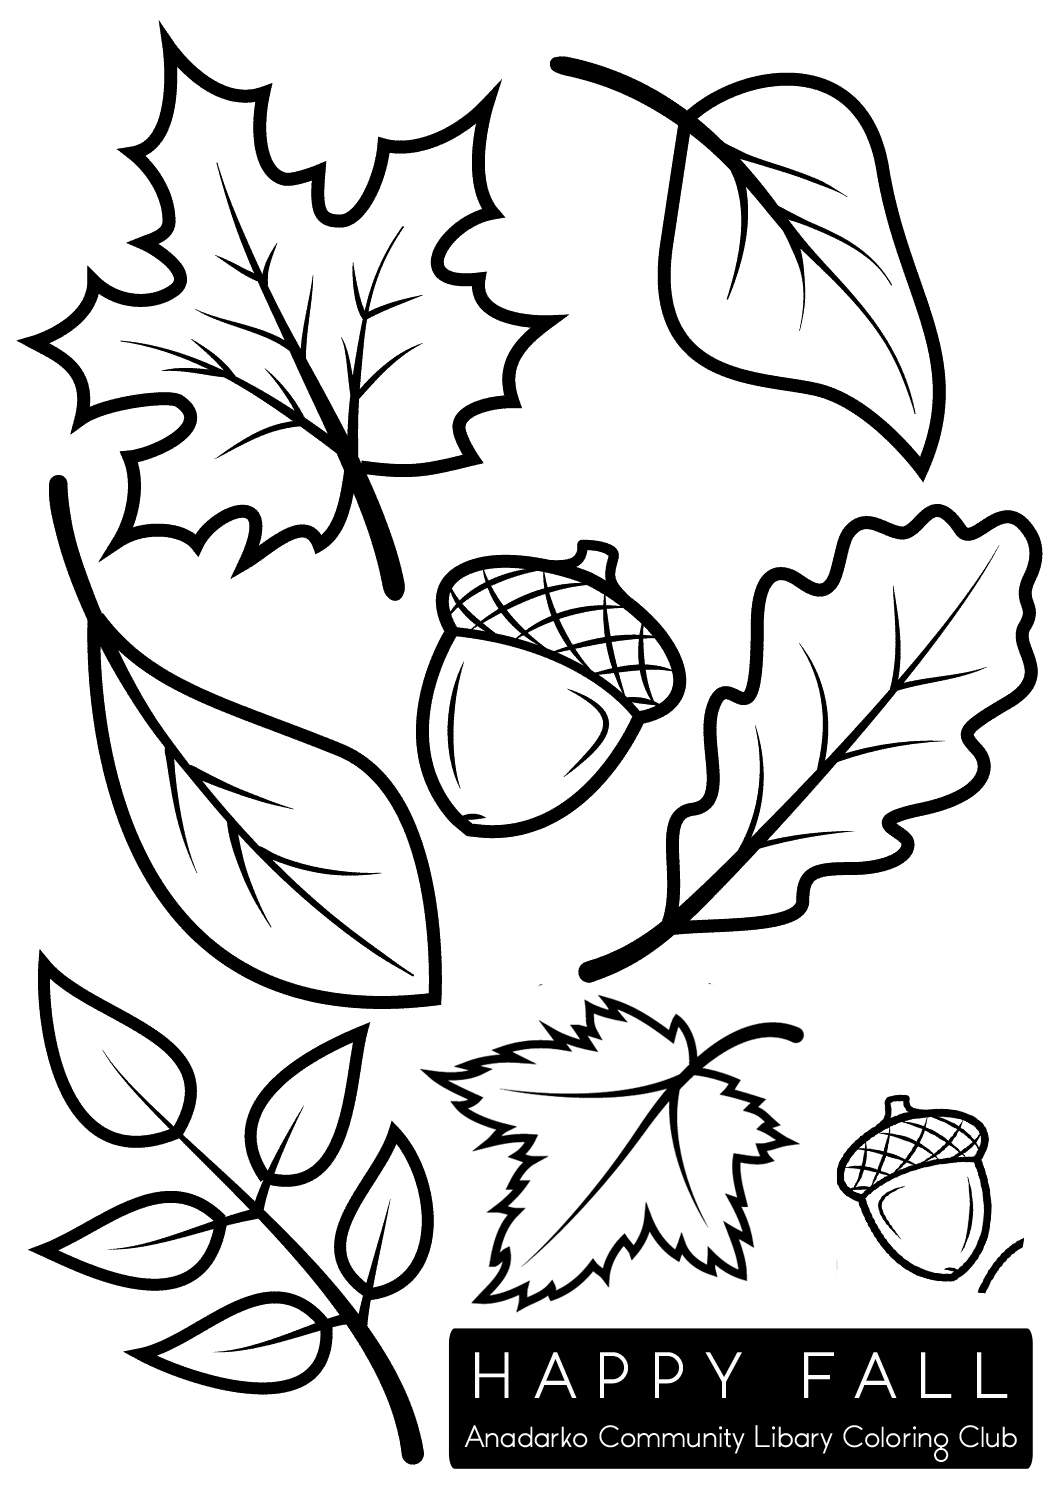 free fall coloring pages fall coloring pages disney coloring pages for kids coloring free fall pages